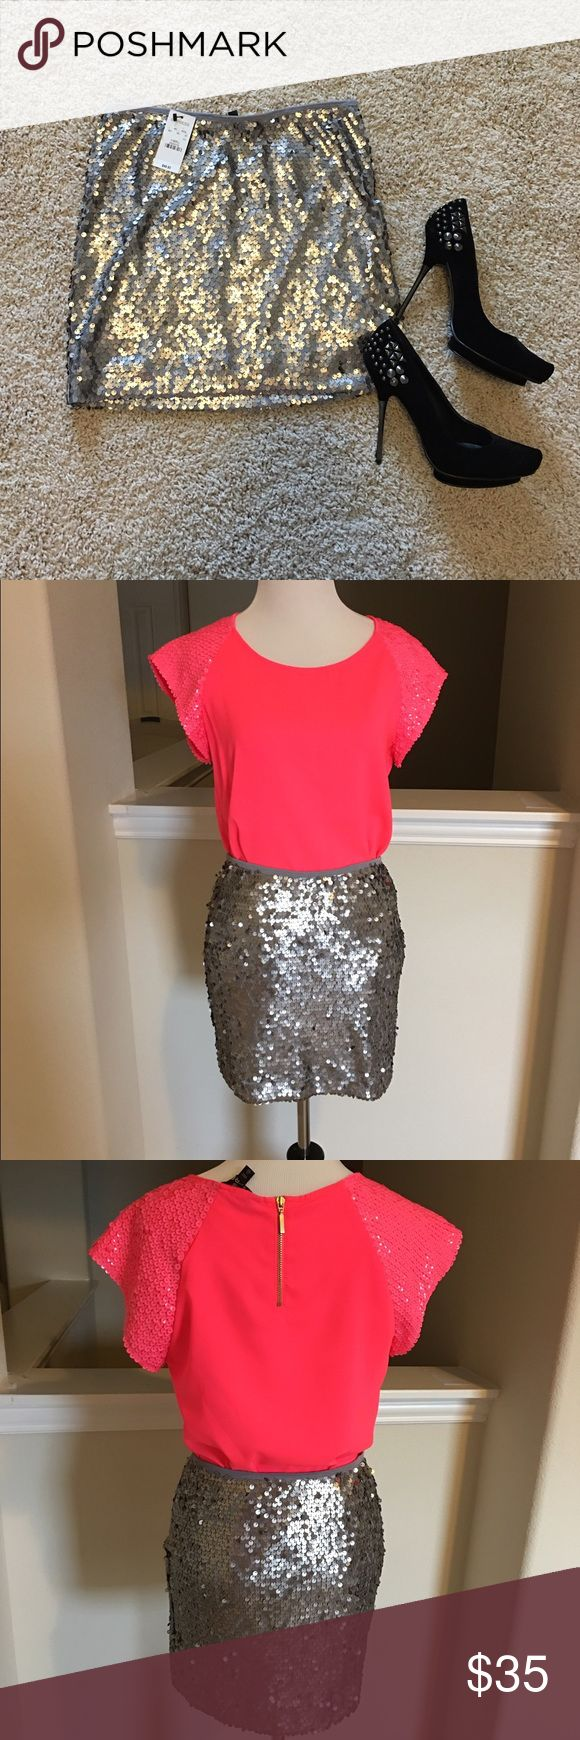 """NWT Express silver sequined skirt. SZ XS. Stretchy NWT Express silver sequined skirt. Has some stretch to it. No zipper just pulls up. In perfect condition. Waist measures 13"""" across laying flat and 15"""" in length. Everything in all the pictures is for sale and I discount with bundles. Ask if you're interested! Comes from a smoke free home. Express Skirts Mini"""